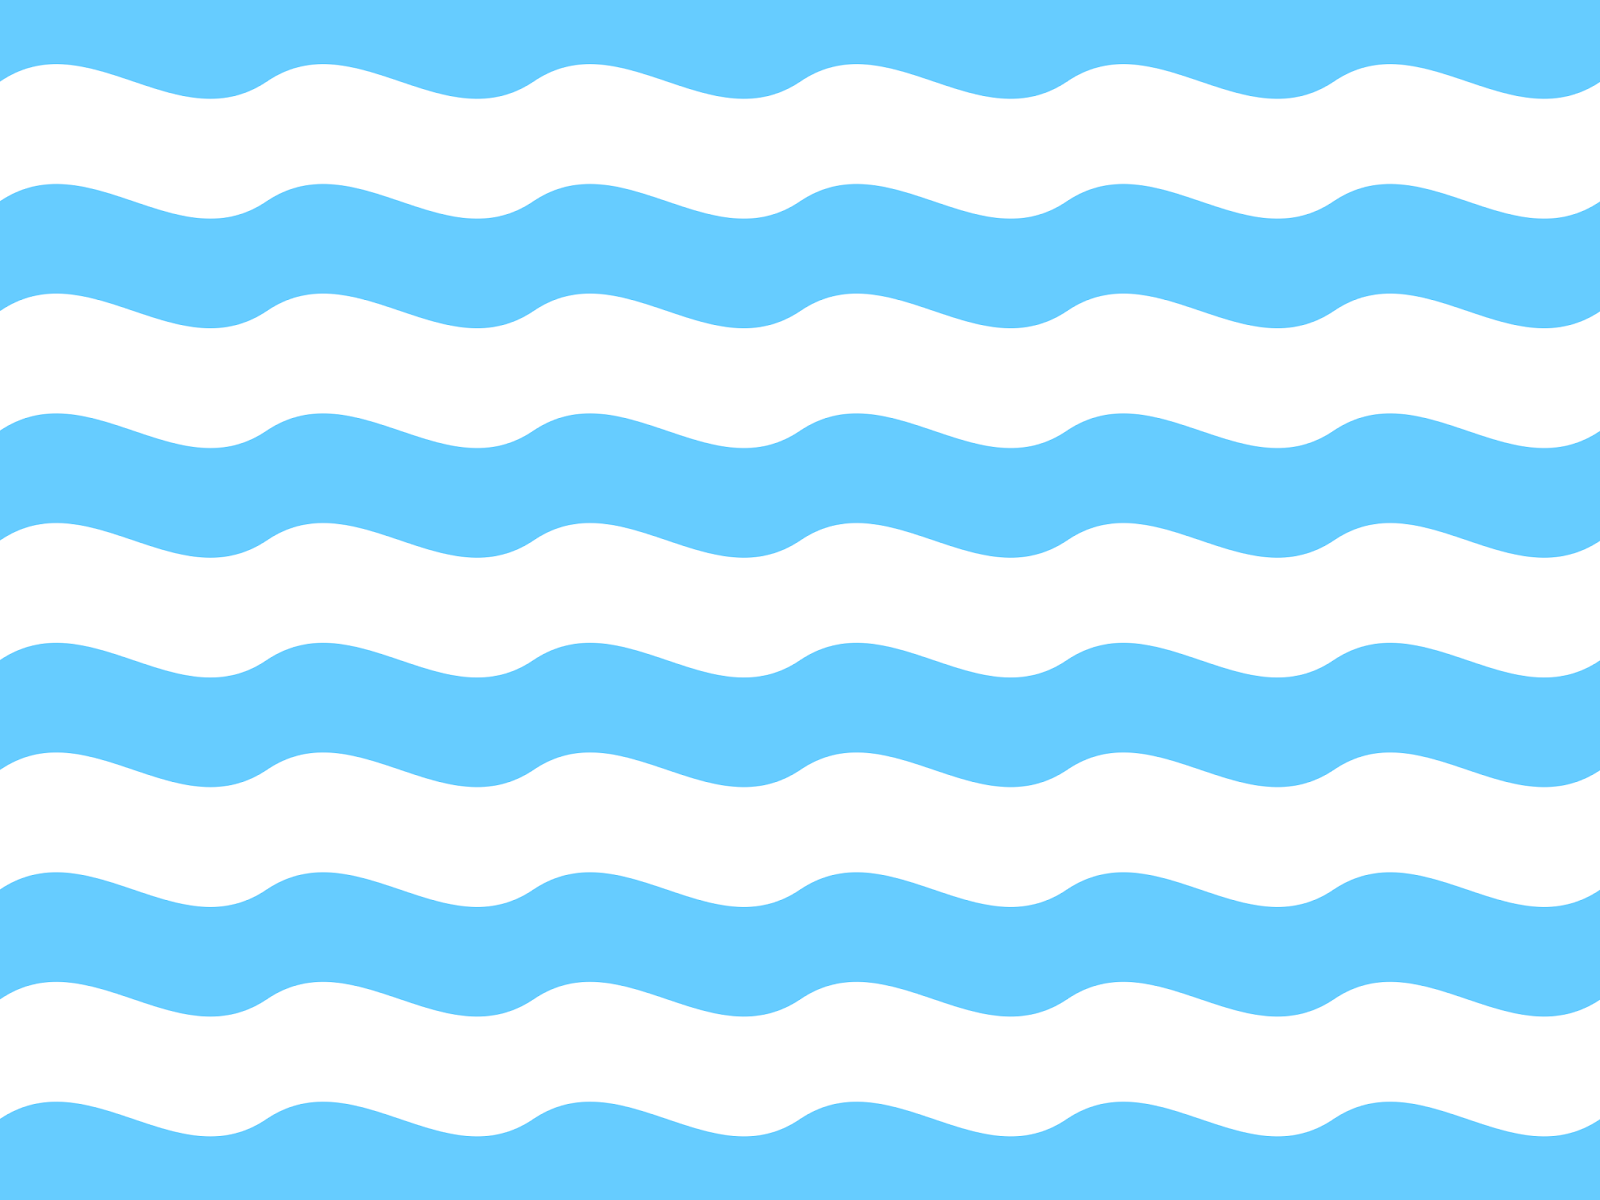 1600x1200 Water clipart water wave